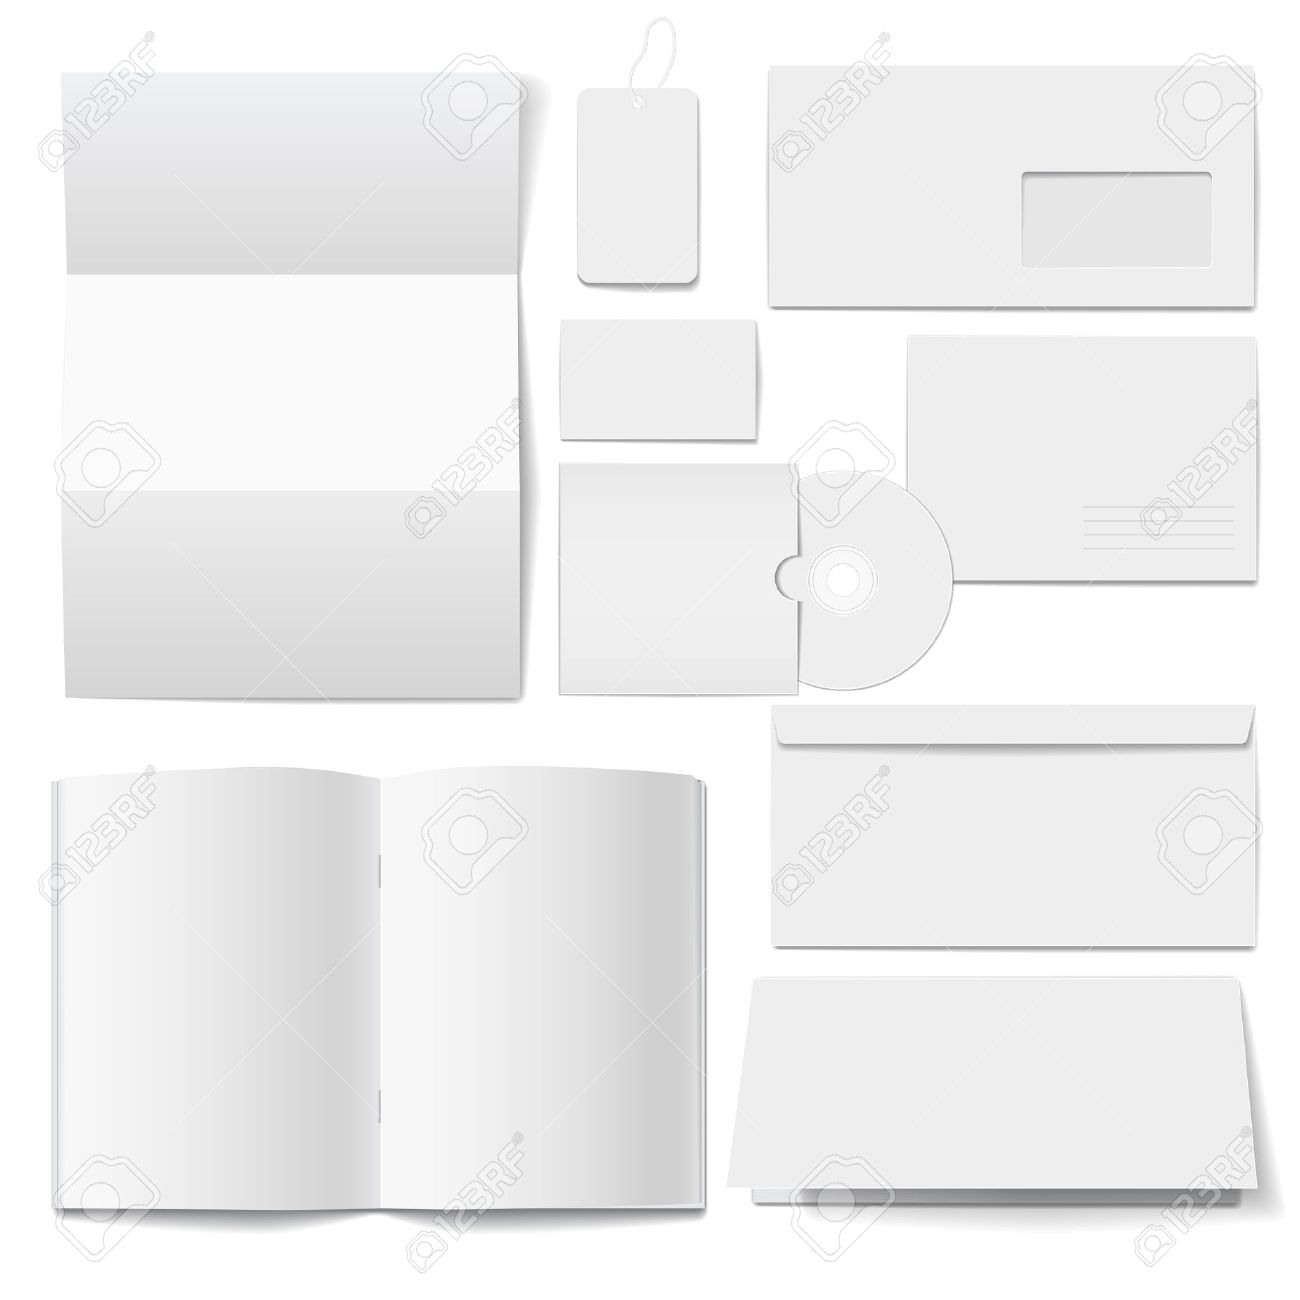 corporate identity templates selected blank royalty free cliparts